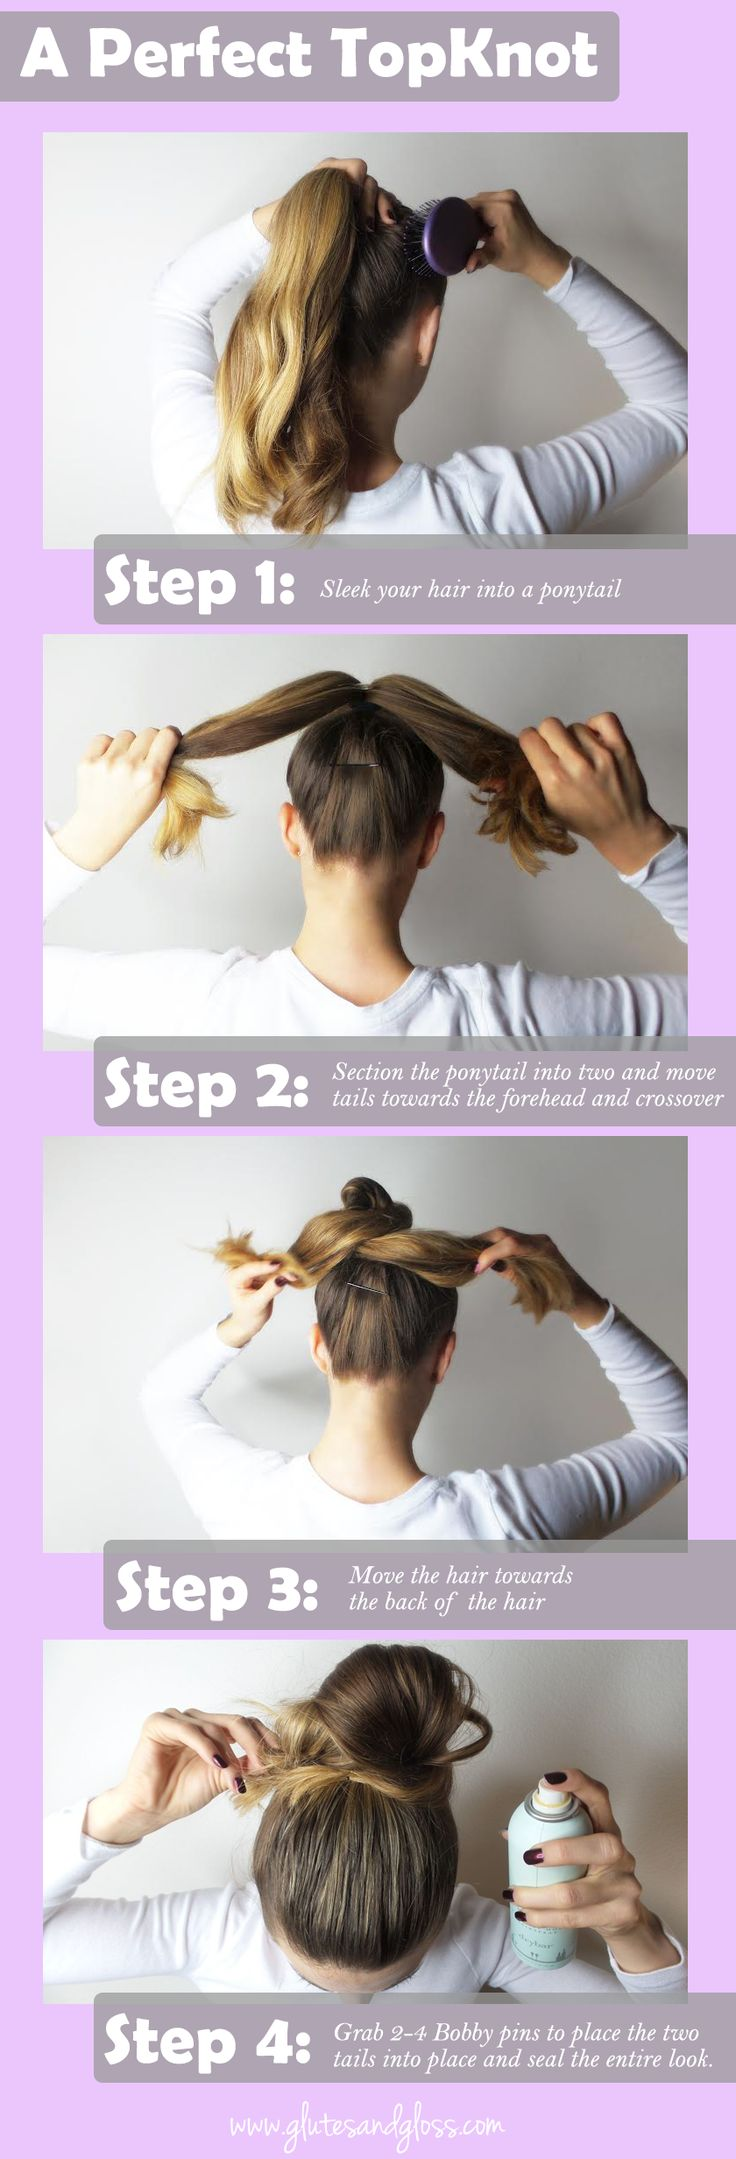 A Perfect TopKnot tutorial.  here's what you will need: http://www.glutesandgloss.com/beauty/a-perfect-topknot/ #glutesandgloss #beauty #hair #tutorial #topknot